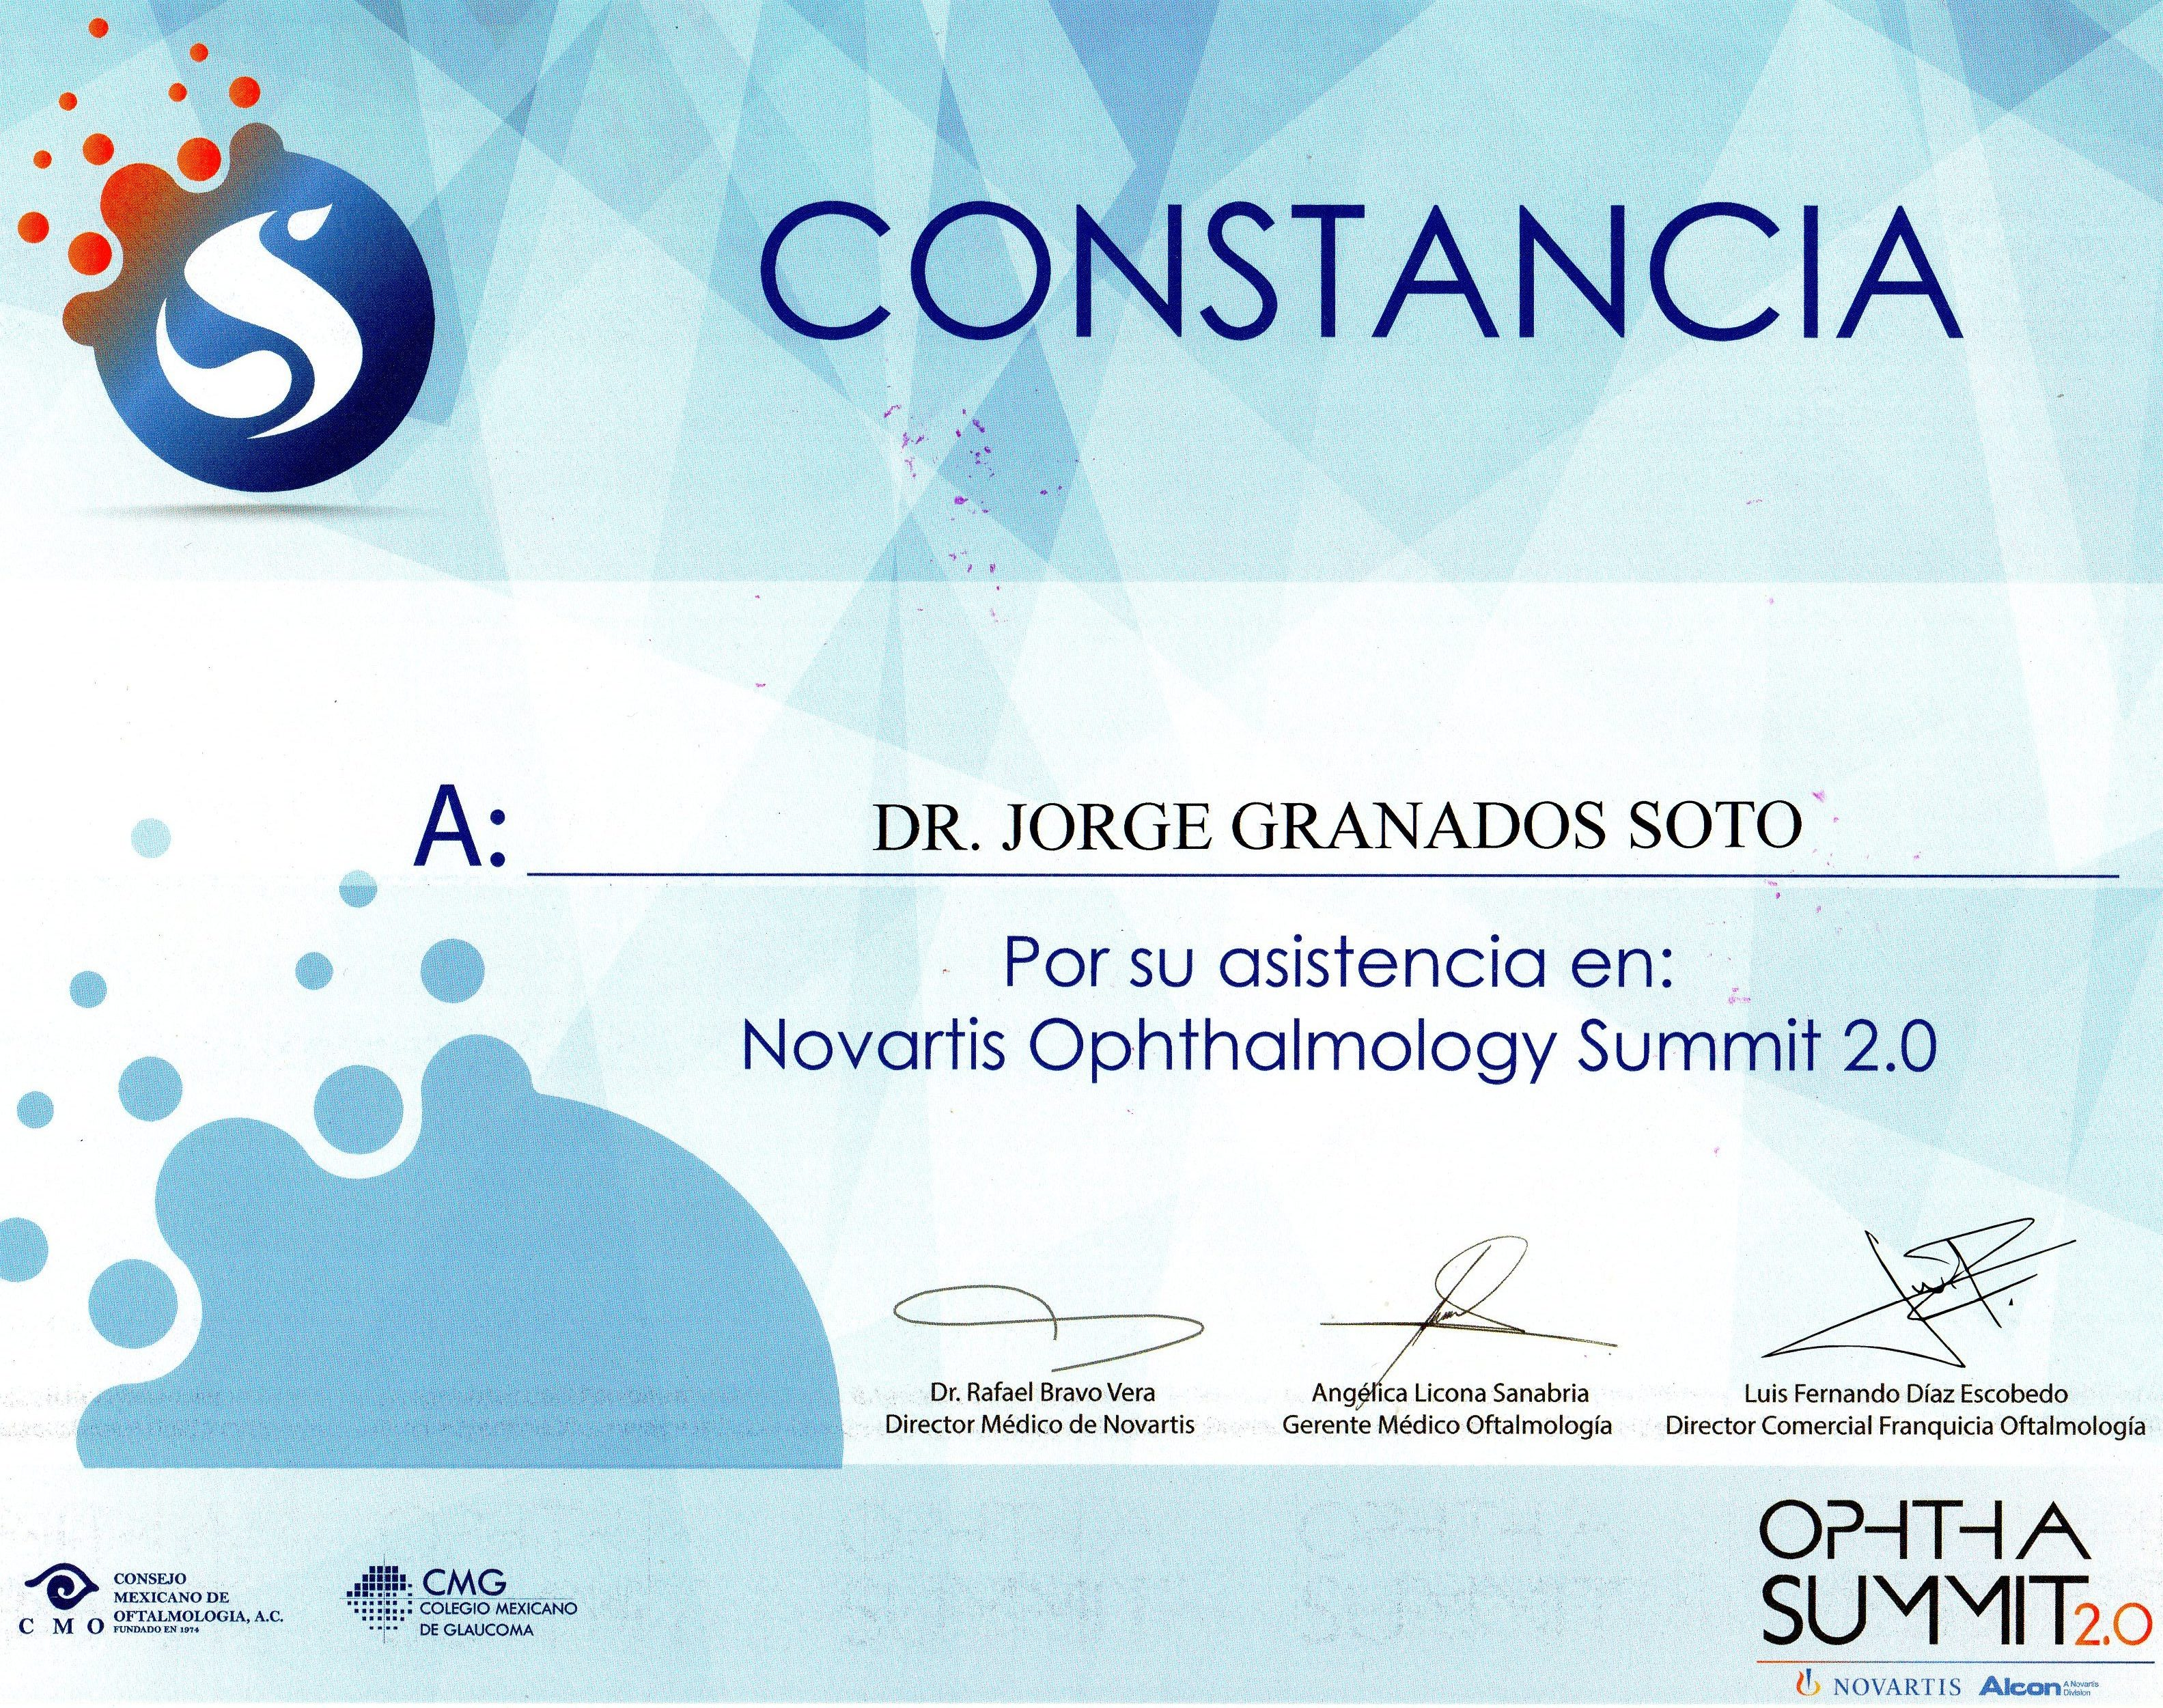 NOVARTIS OPHTHALMOLOGY SUMMIT 2.0